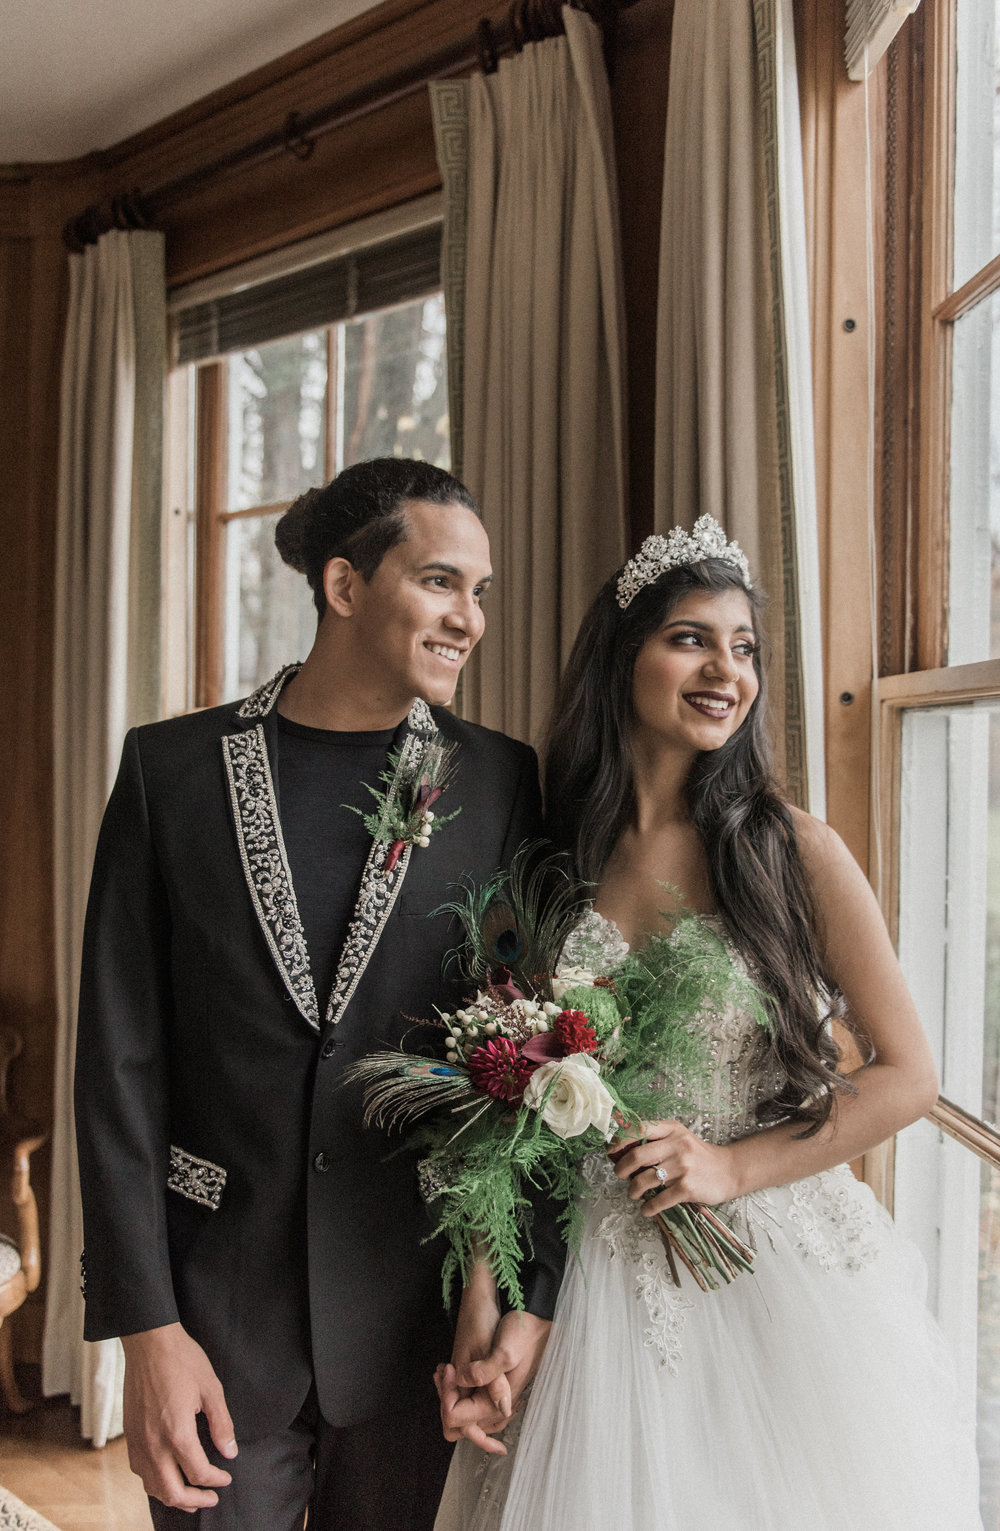 A Maroon, Turquoise + Gold Ethereal Fairytale Styled Wedding - Northern Virginia Wedding -- Wedding Blog - The Overwhelmed Bride